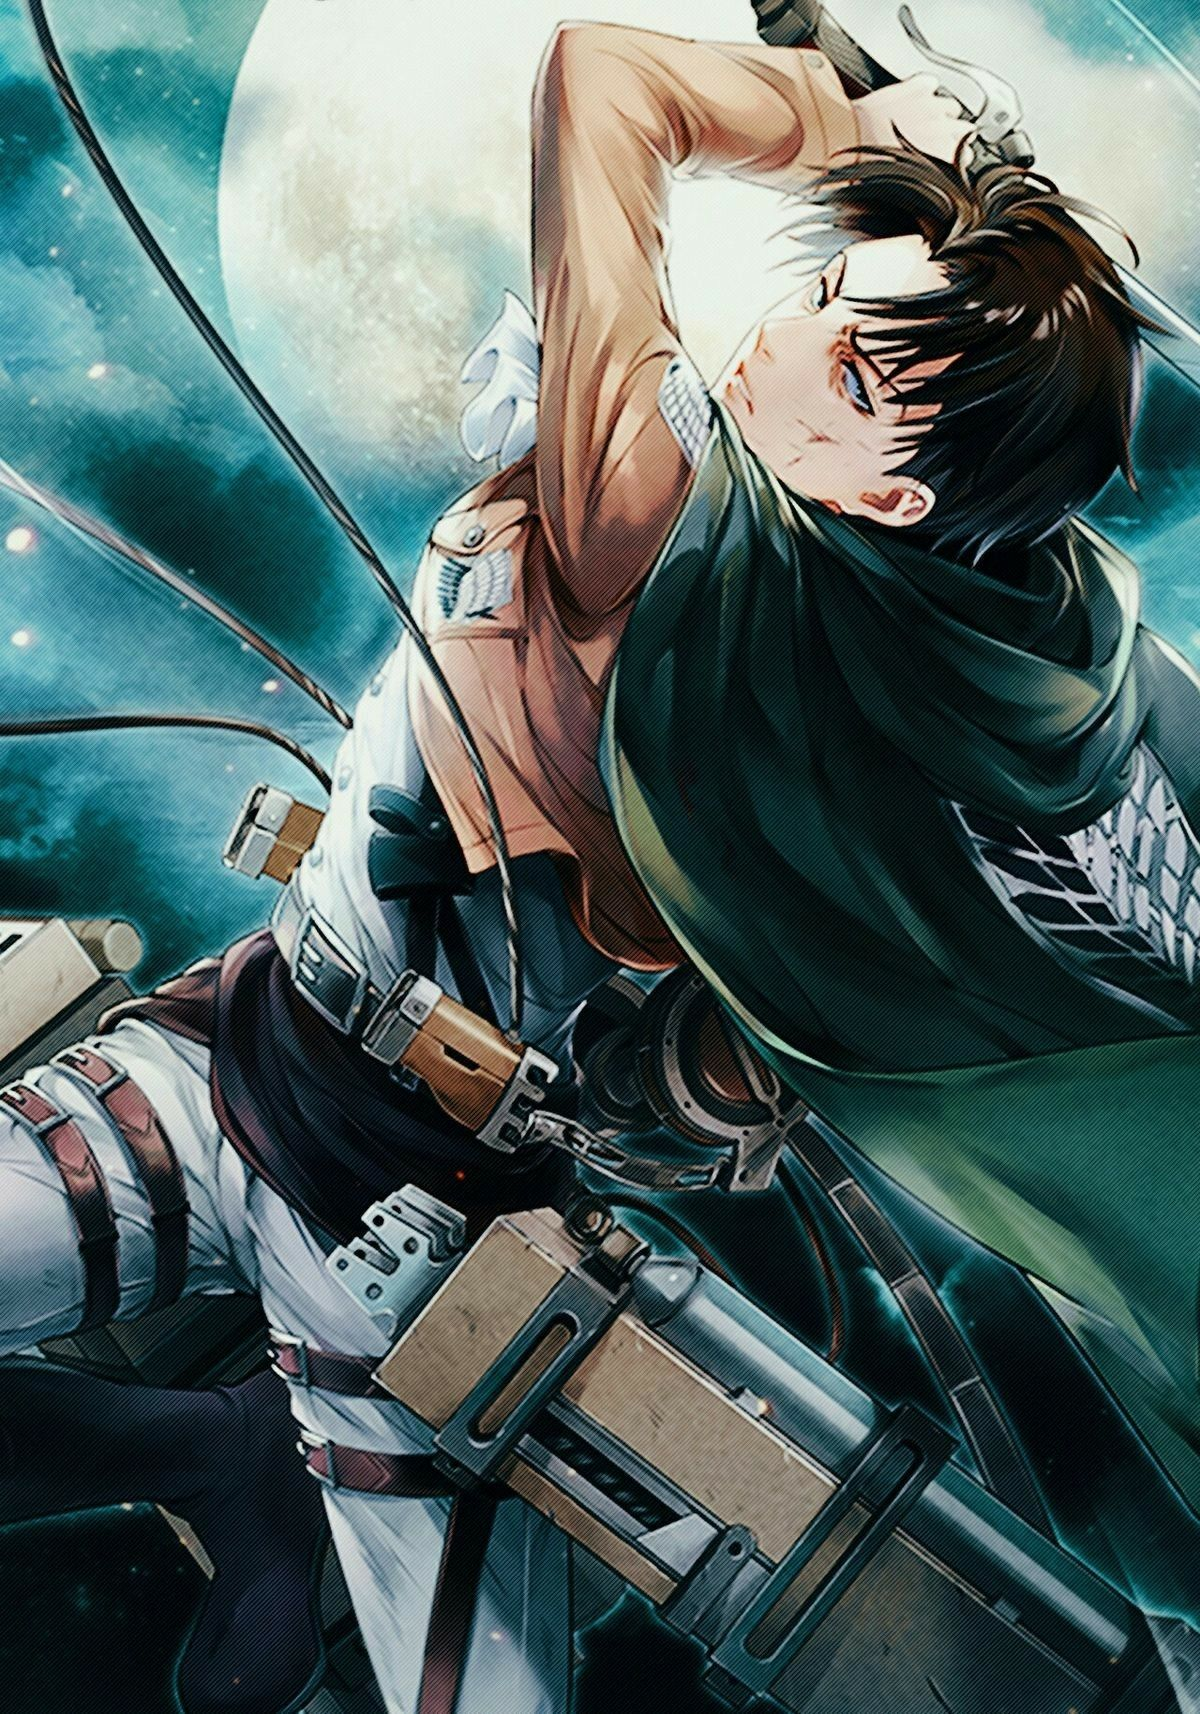 pin by rachel on anime pinterest attack on titan attack on